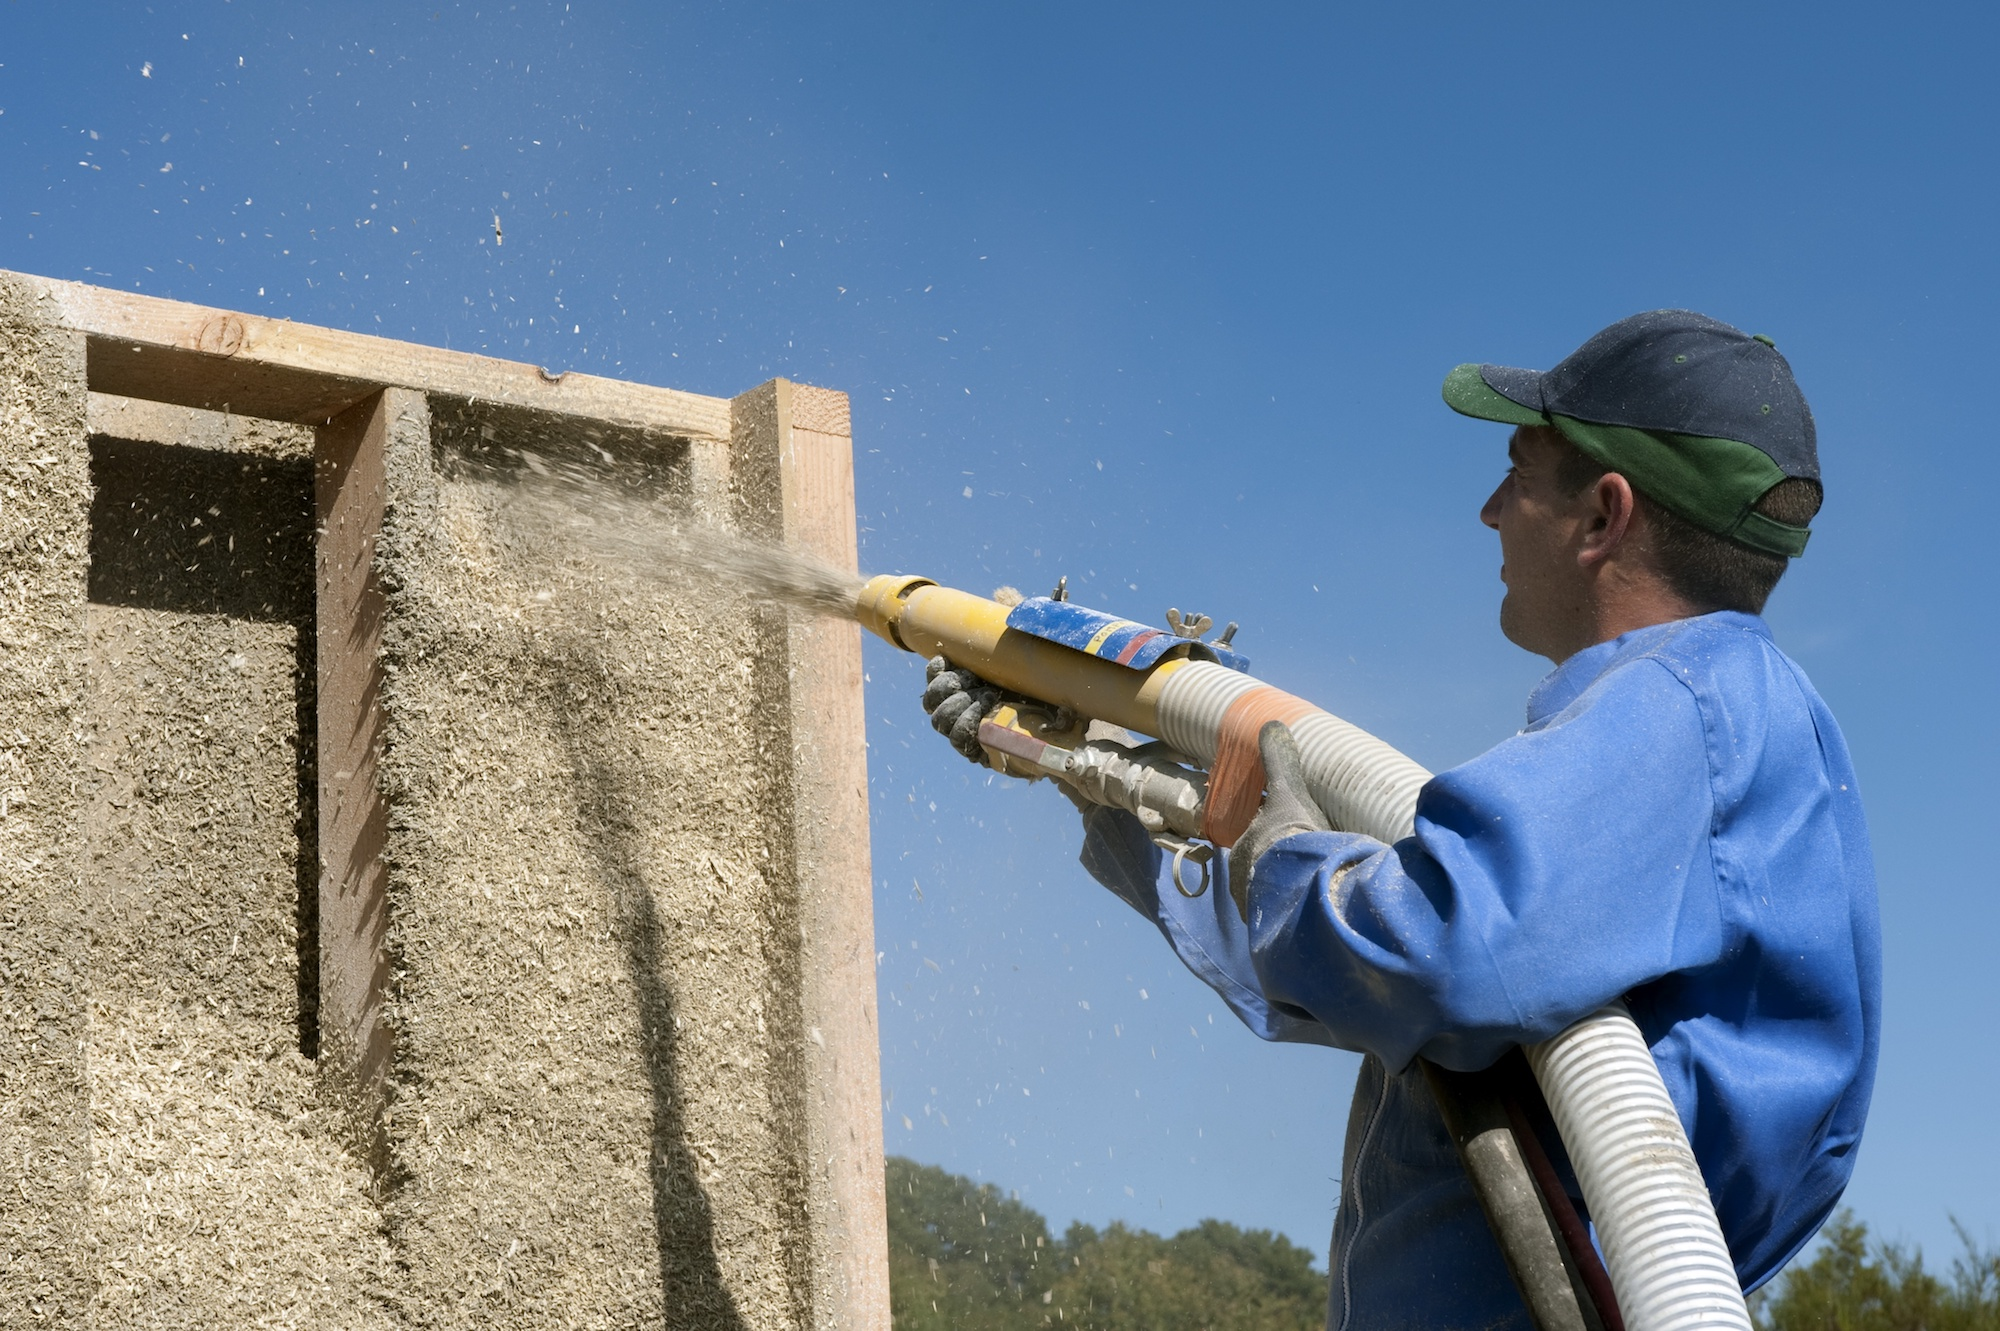 A man in a blue shirt and baseball cap holds a spray hose blasting out a mixture of small bits of hemp into a wooden building frame